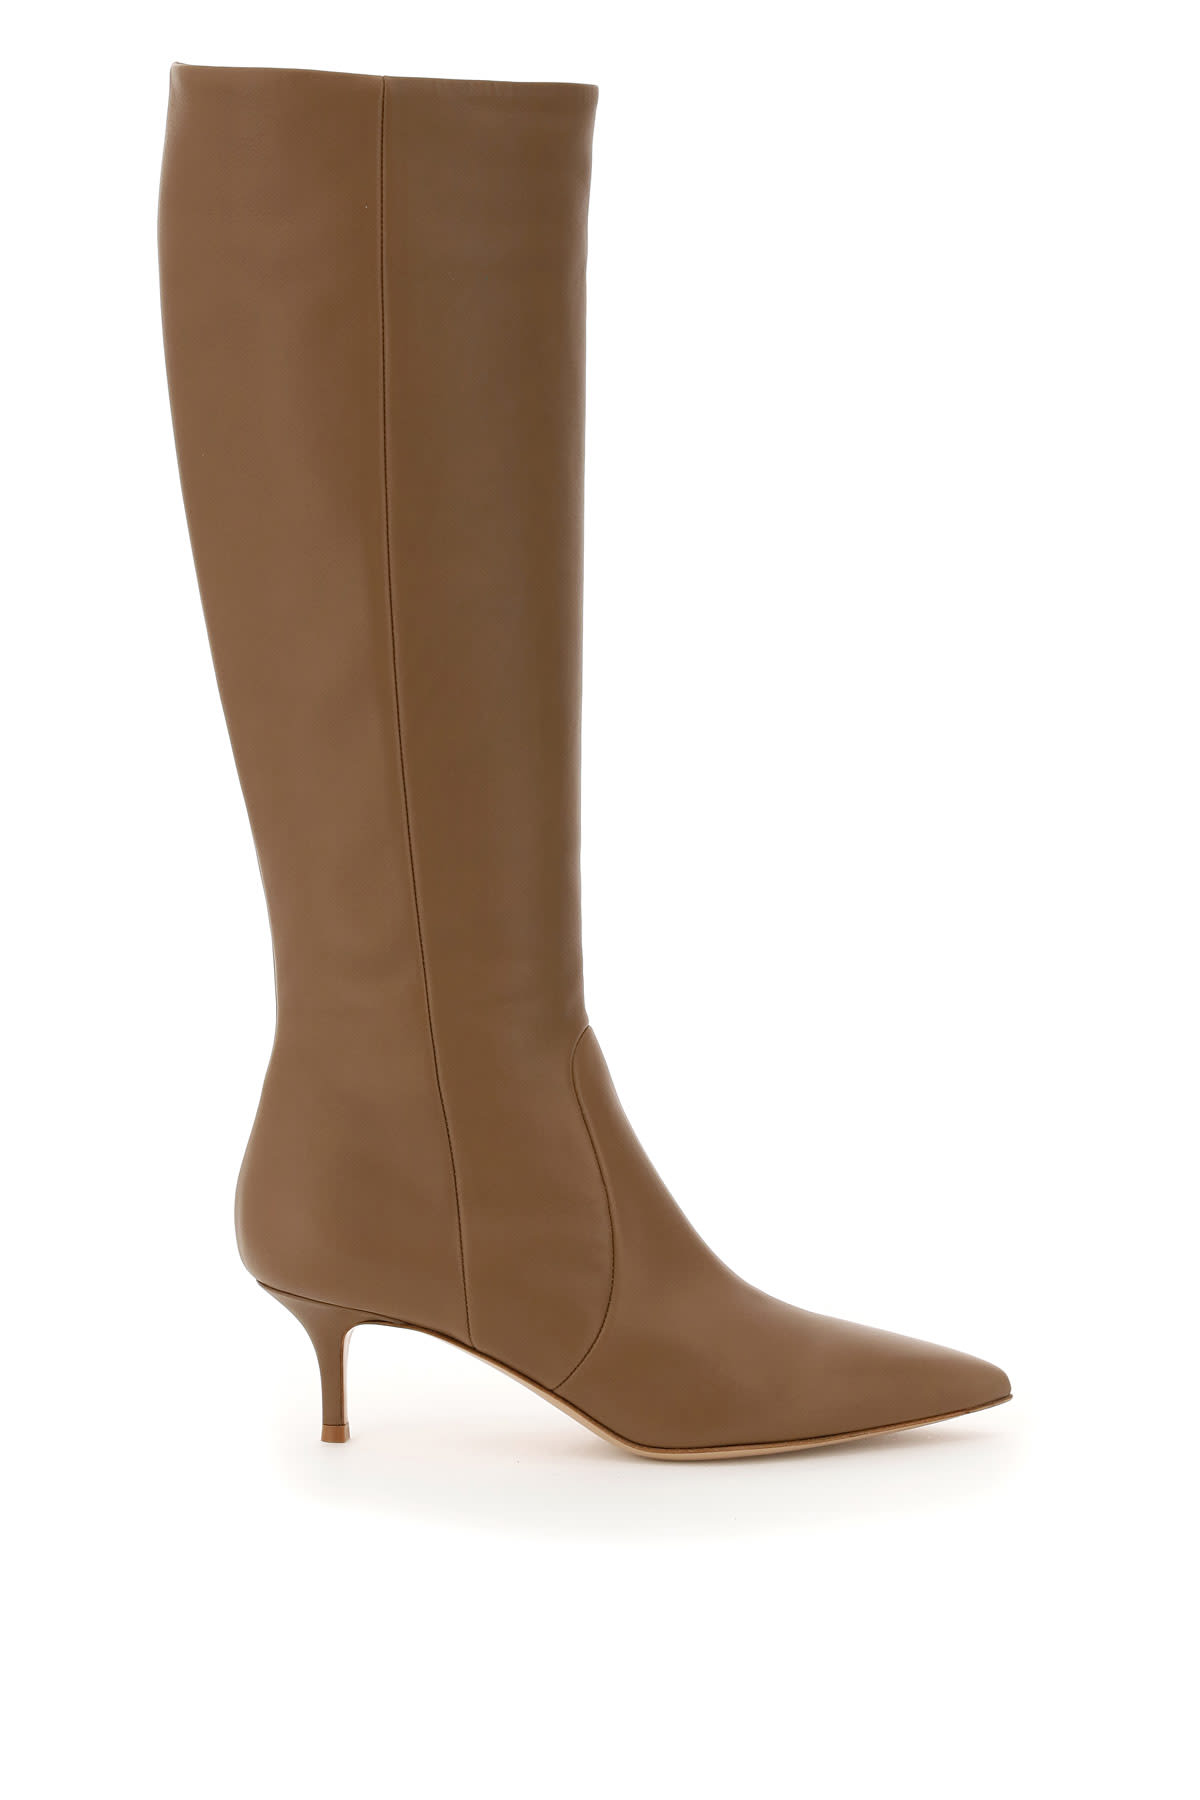 Gianvito Rossi JANE LEATHER BOOTS